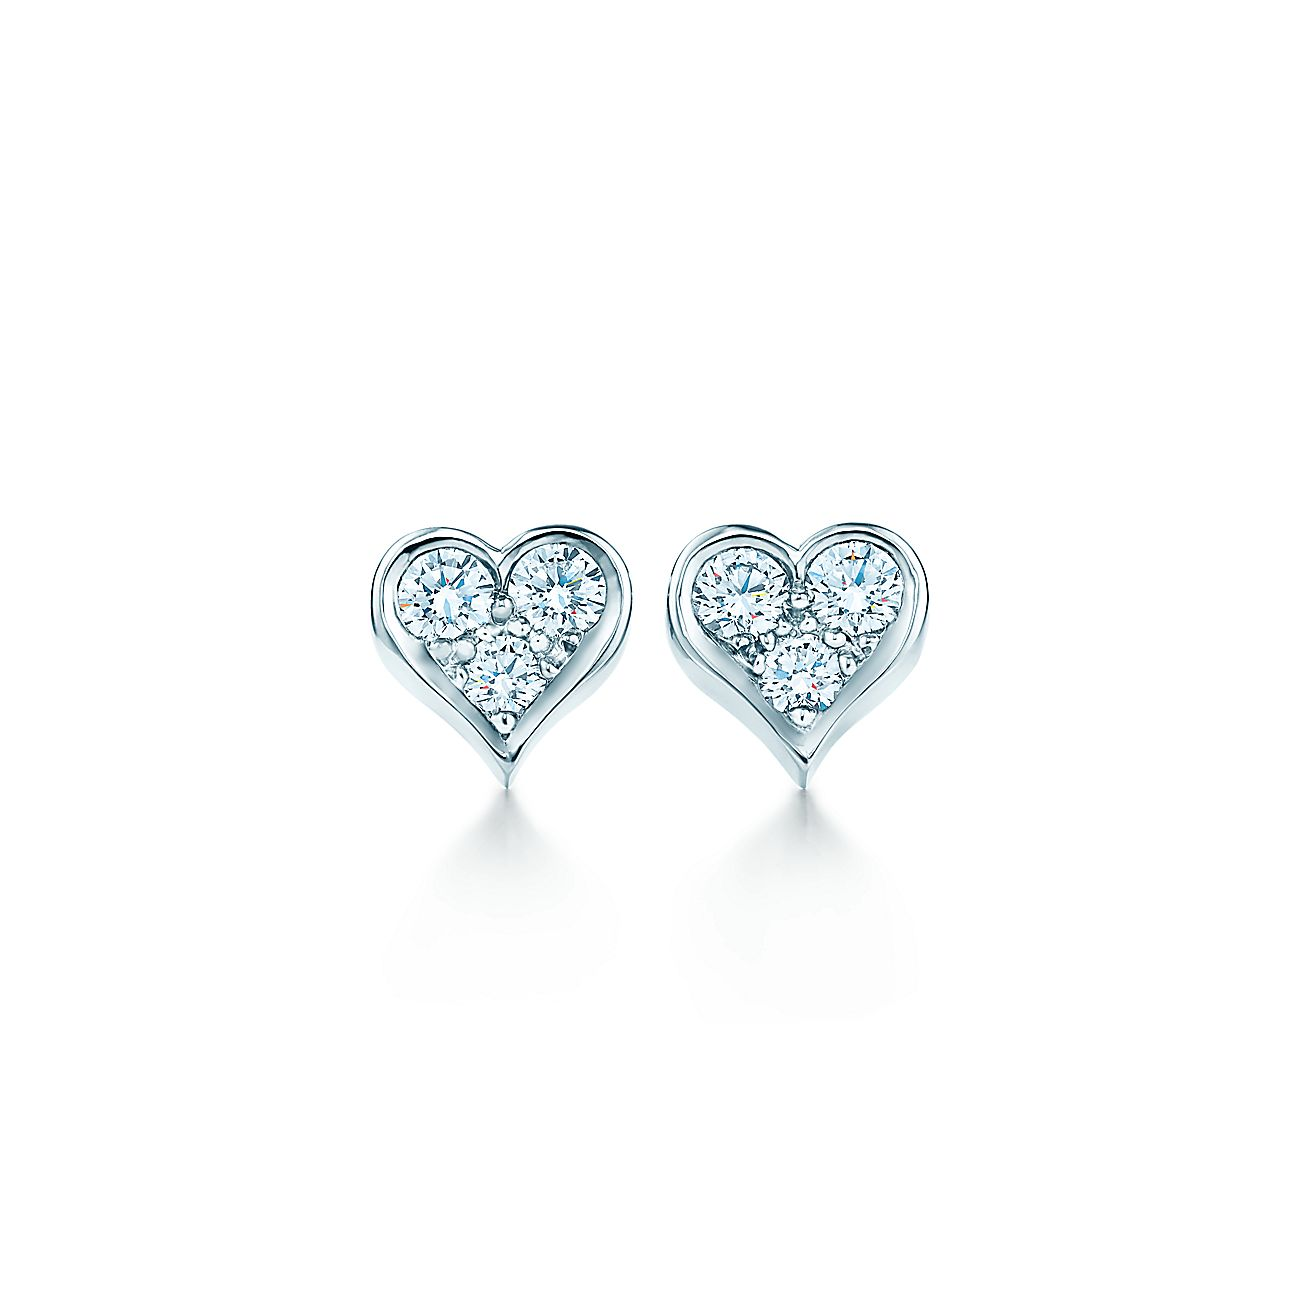 earrings uk en estore heart pandora plain studs